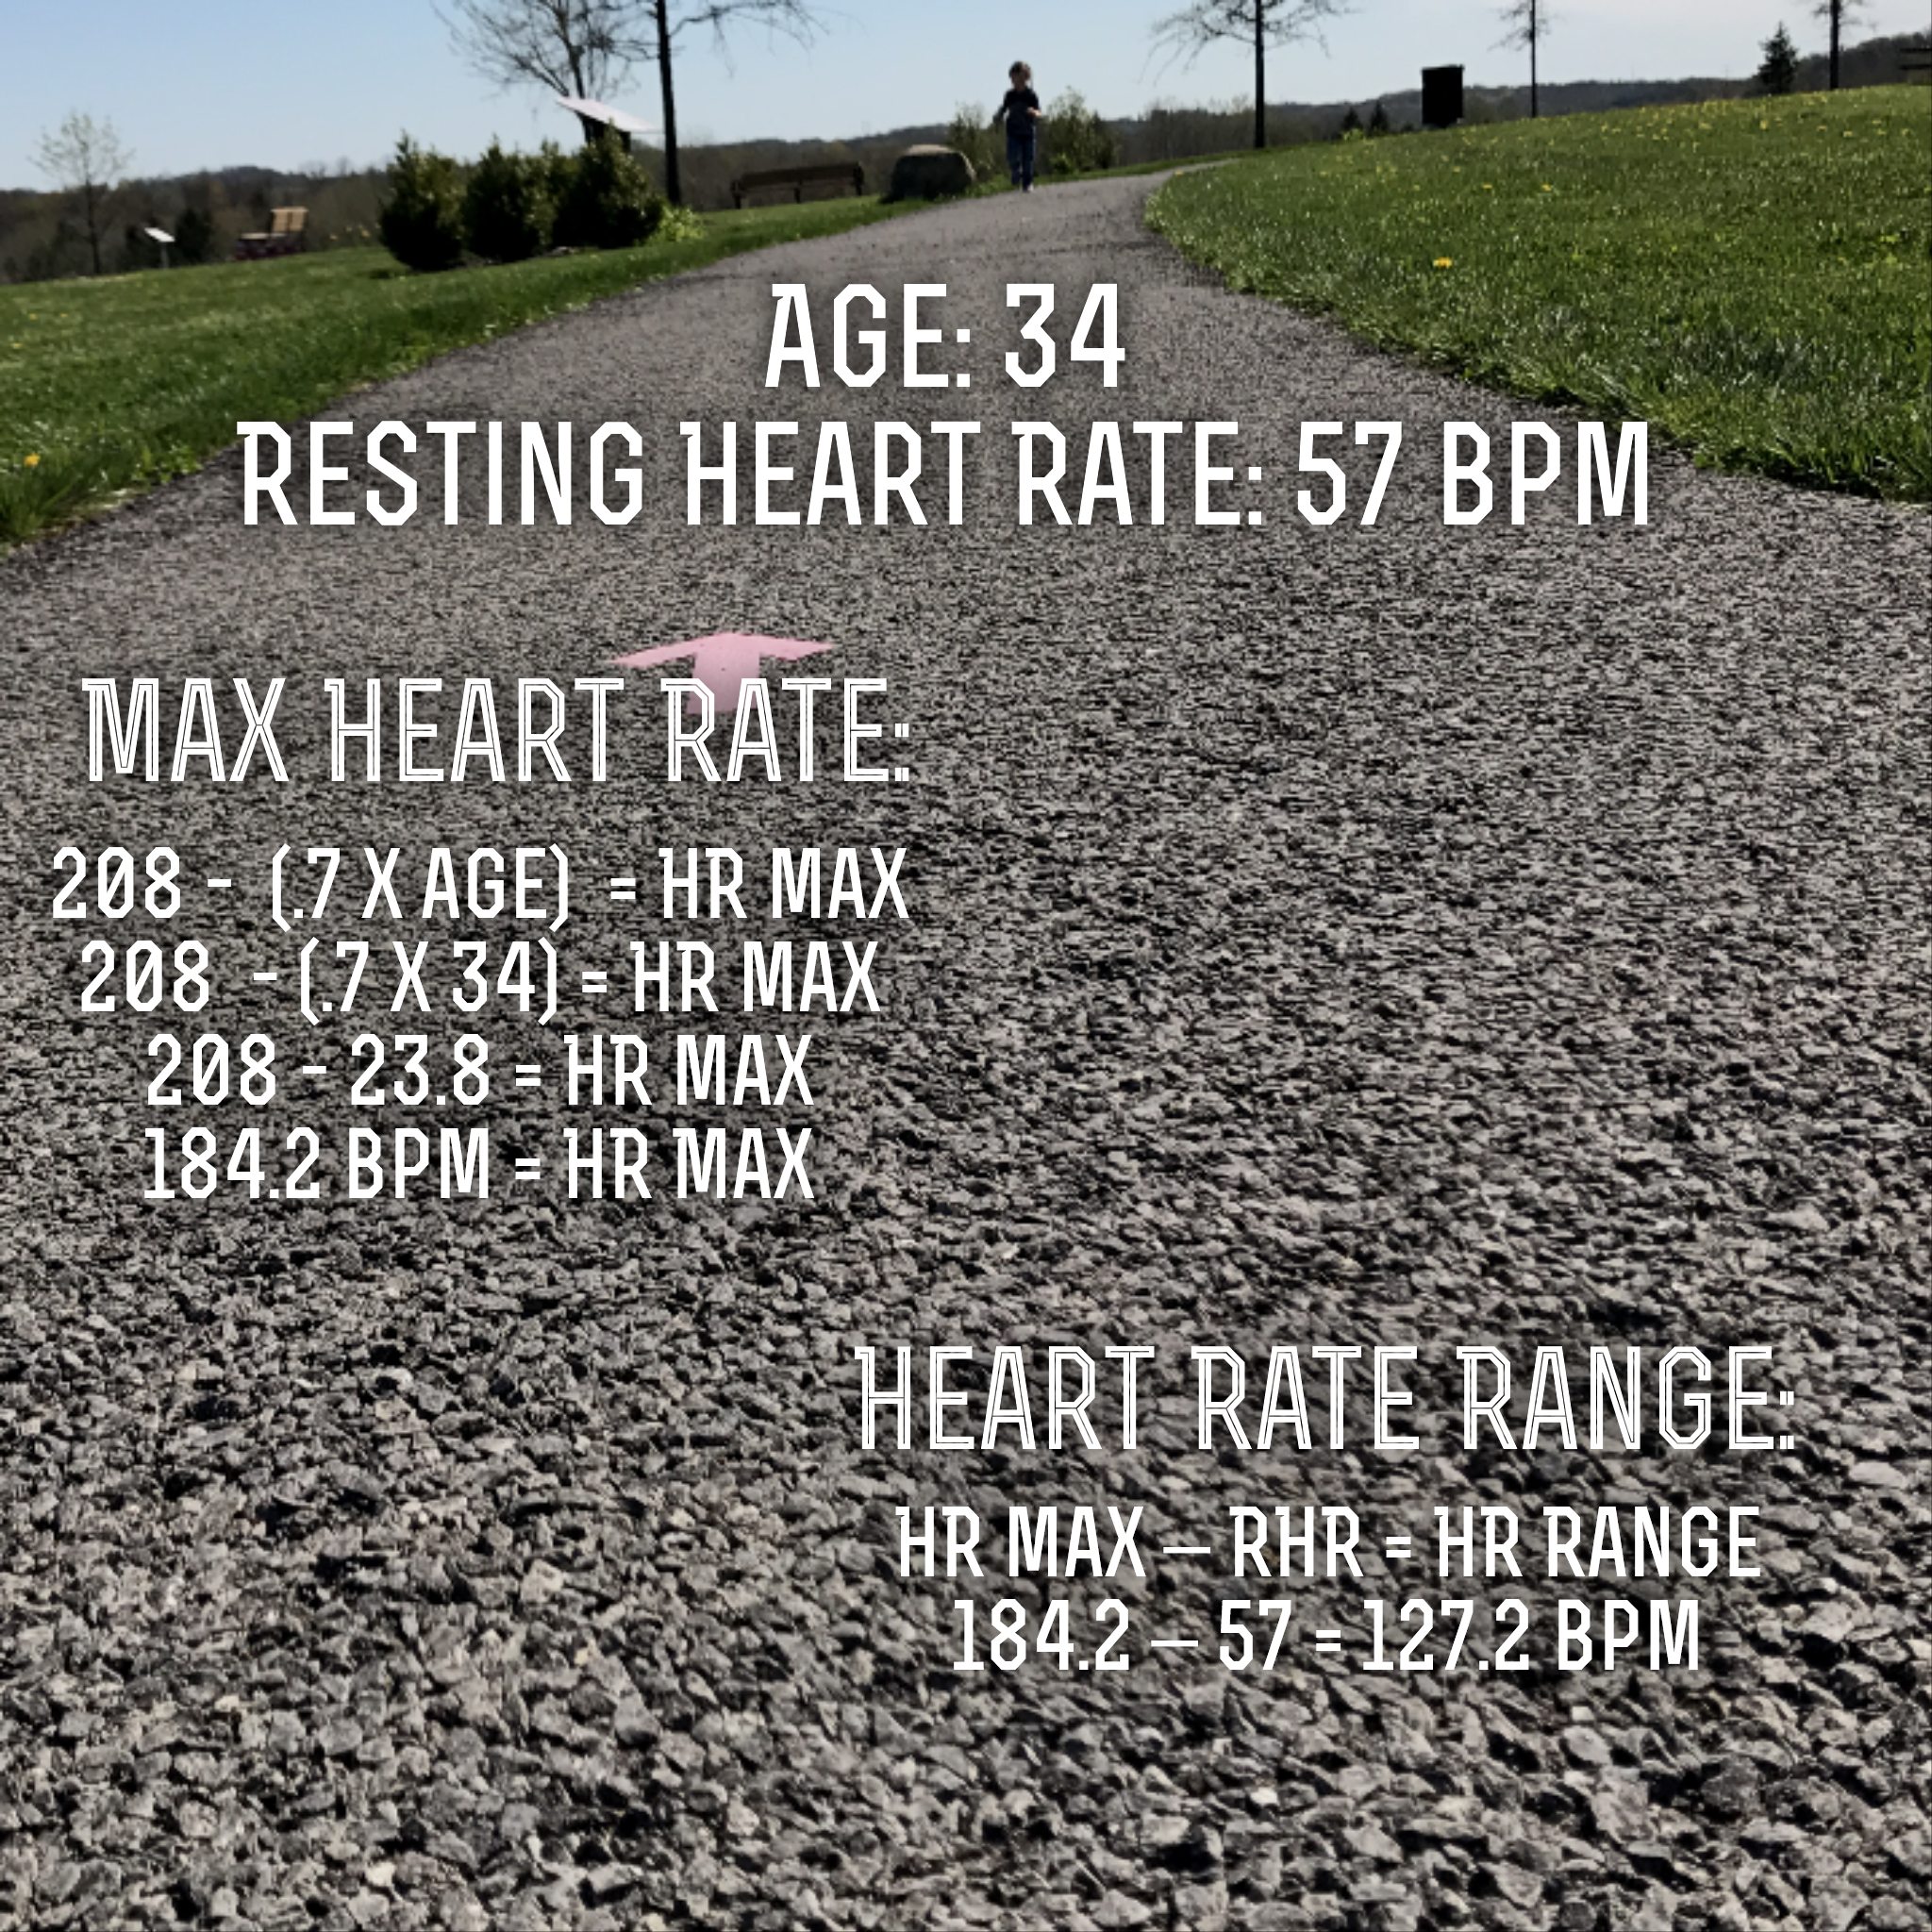 Heart rate 101 any day with a for the moment ill use my own rhr and age as an example heart rate zones nvjuhfo Image collections